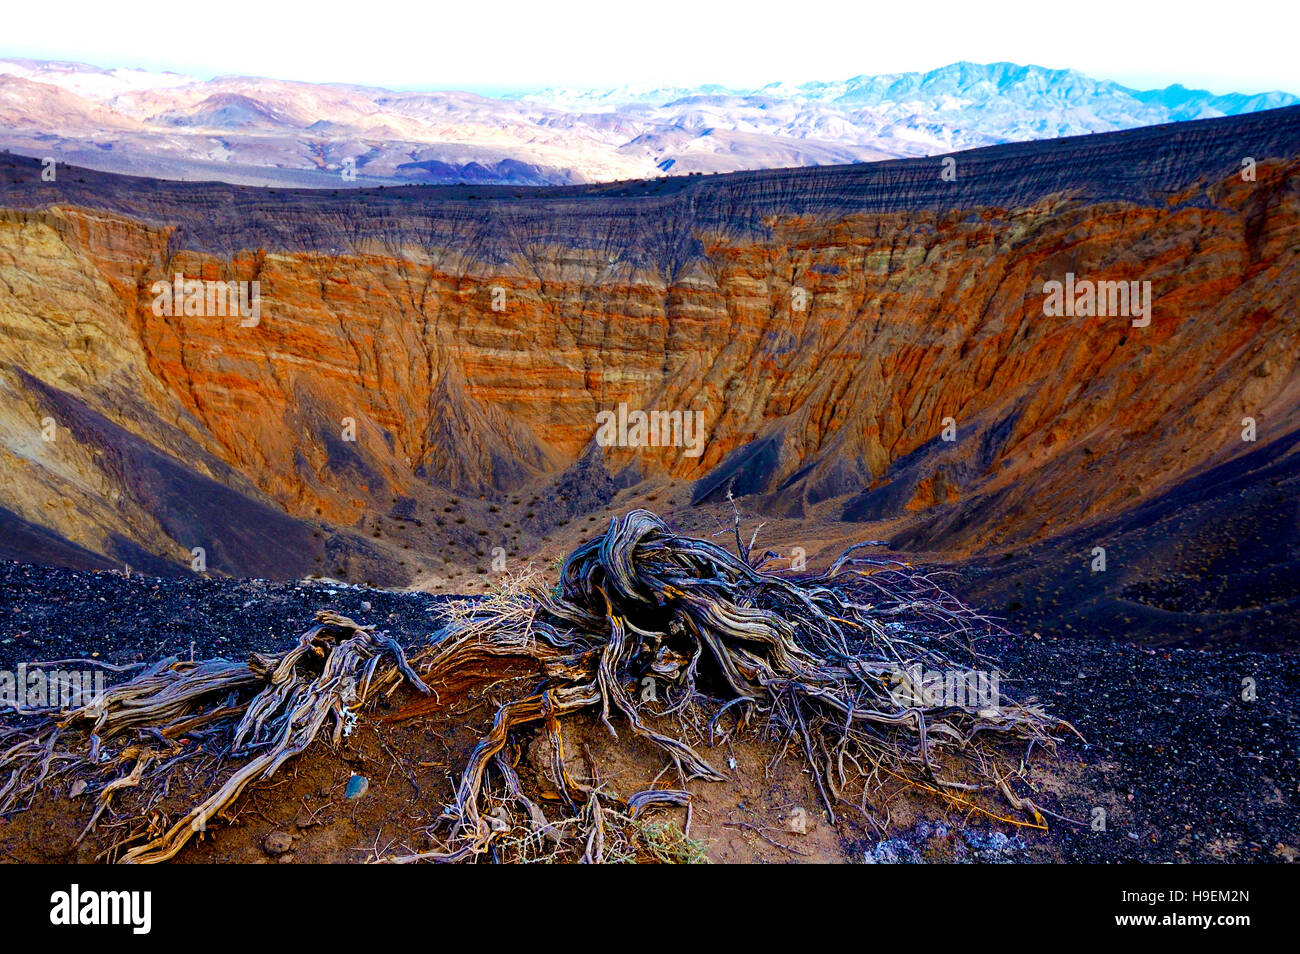 crater-view-at-the-death-valley-national